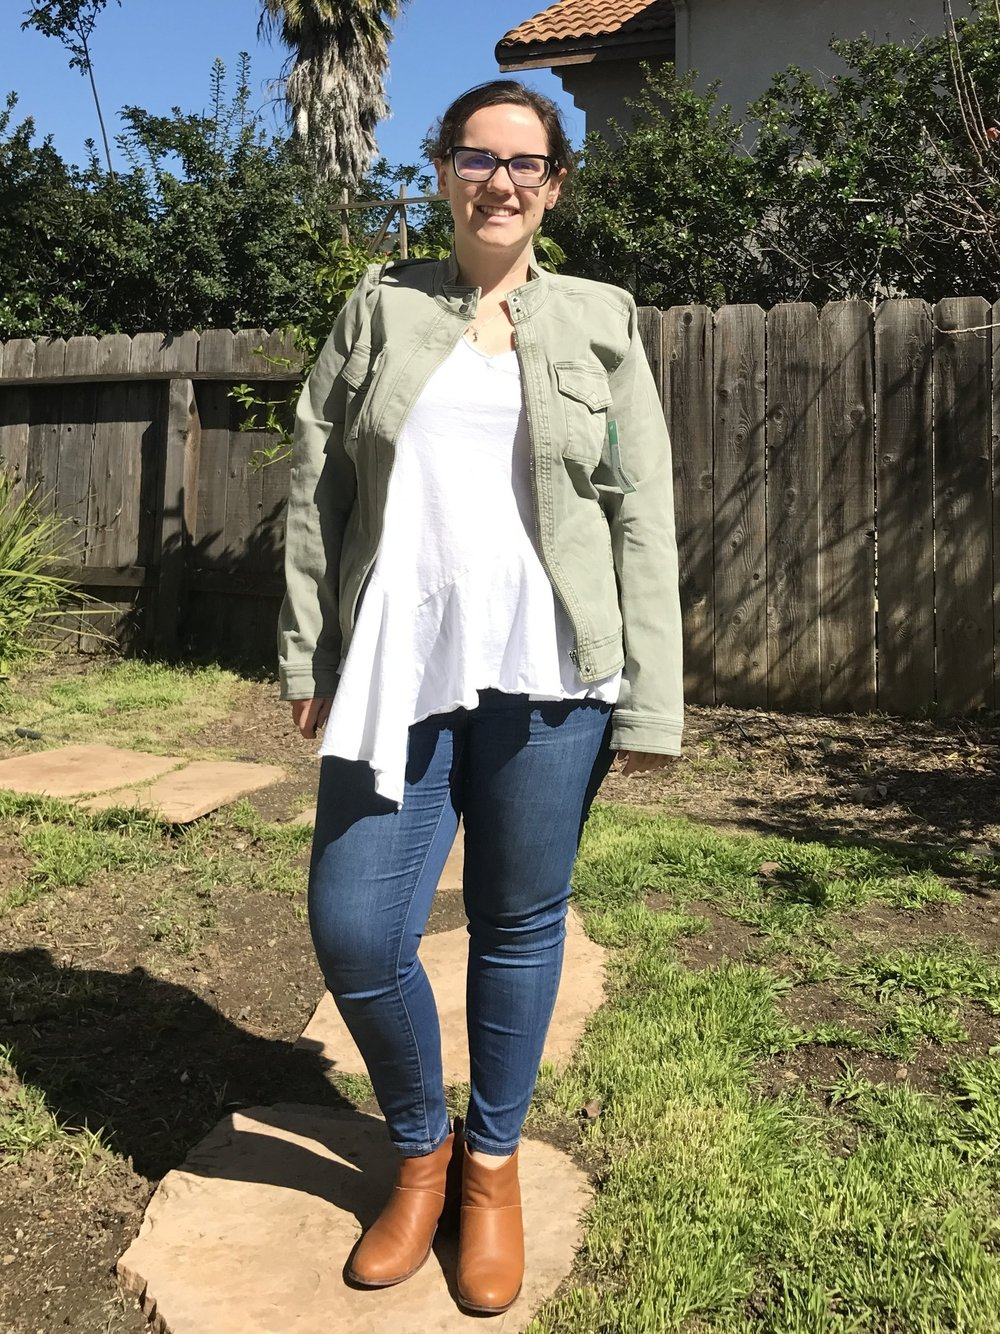 Liverpool Harper Denim Jacket - RETURNED (It's just too big in the shoulders!)